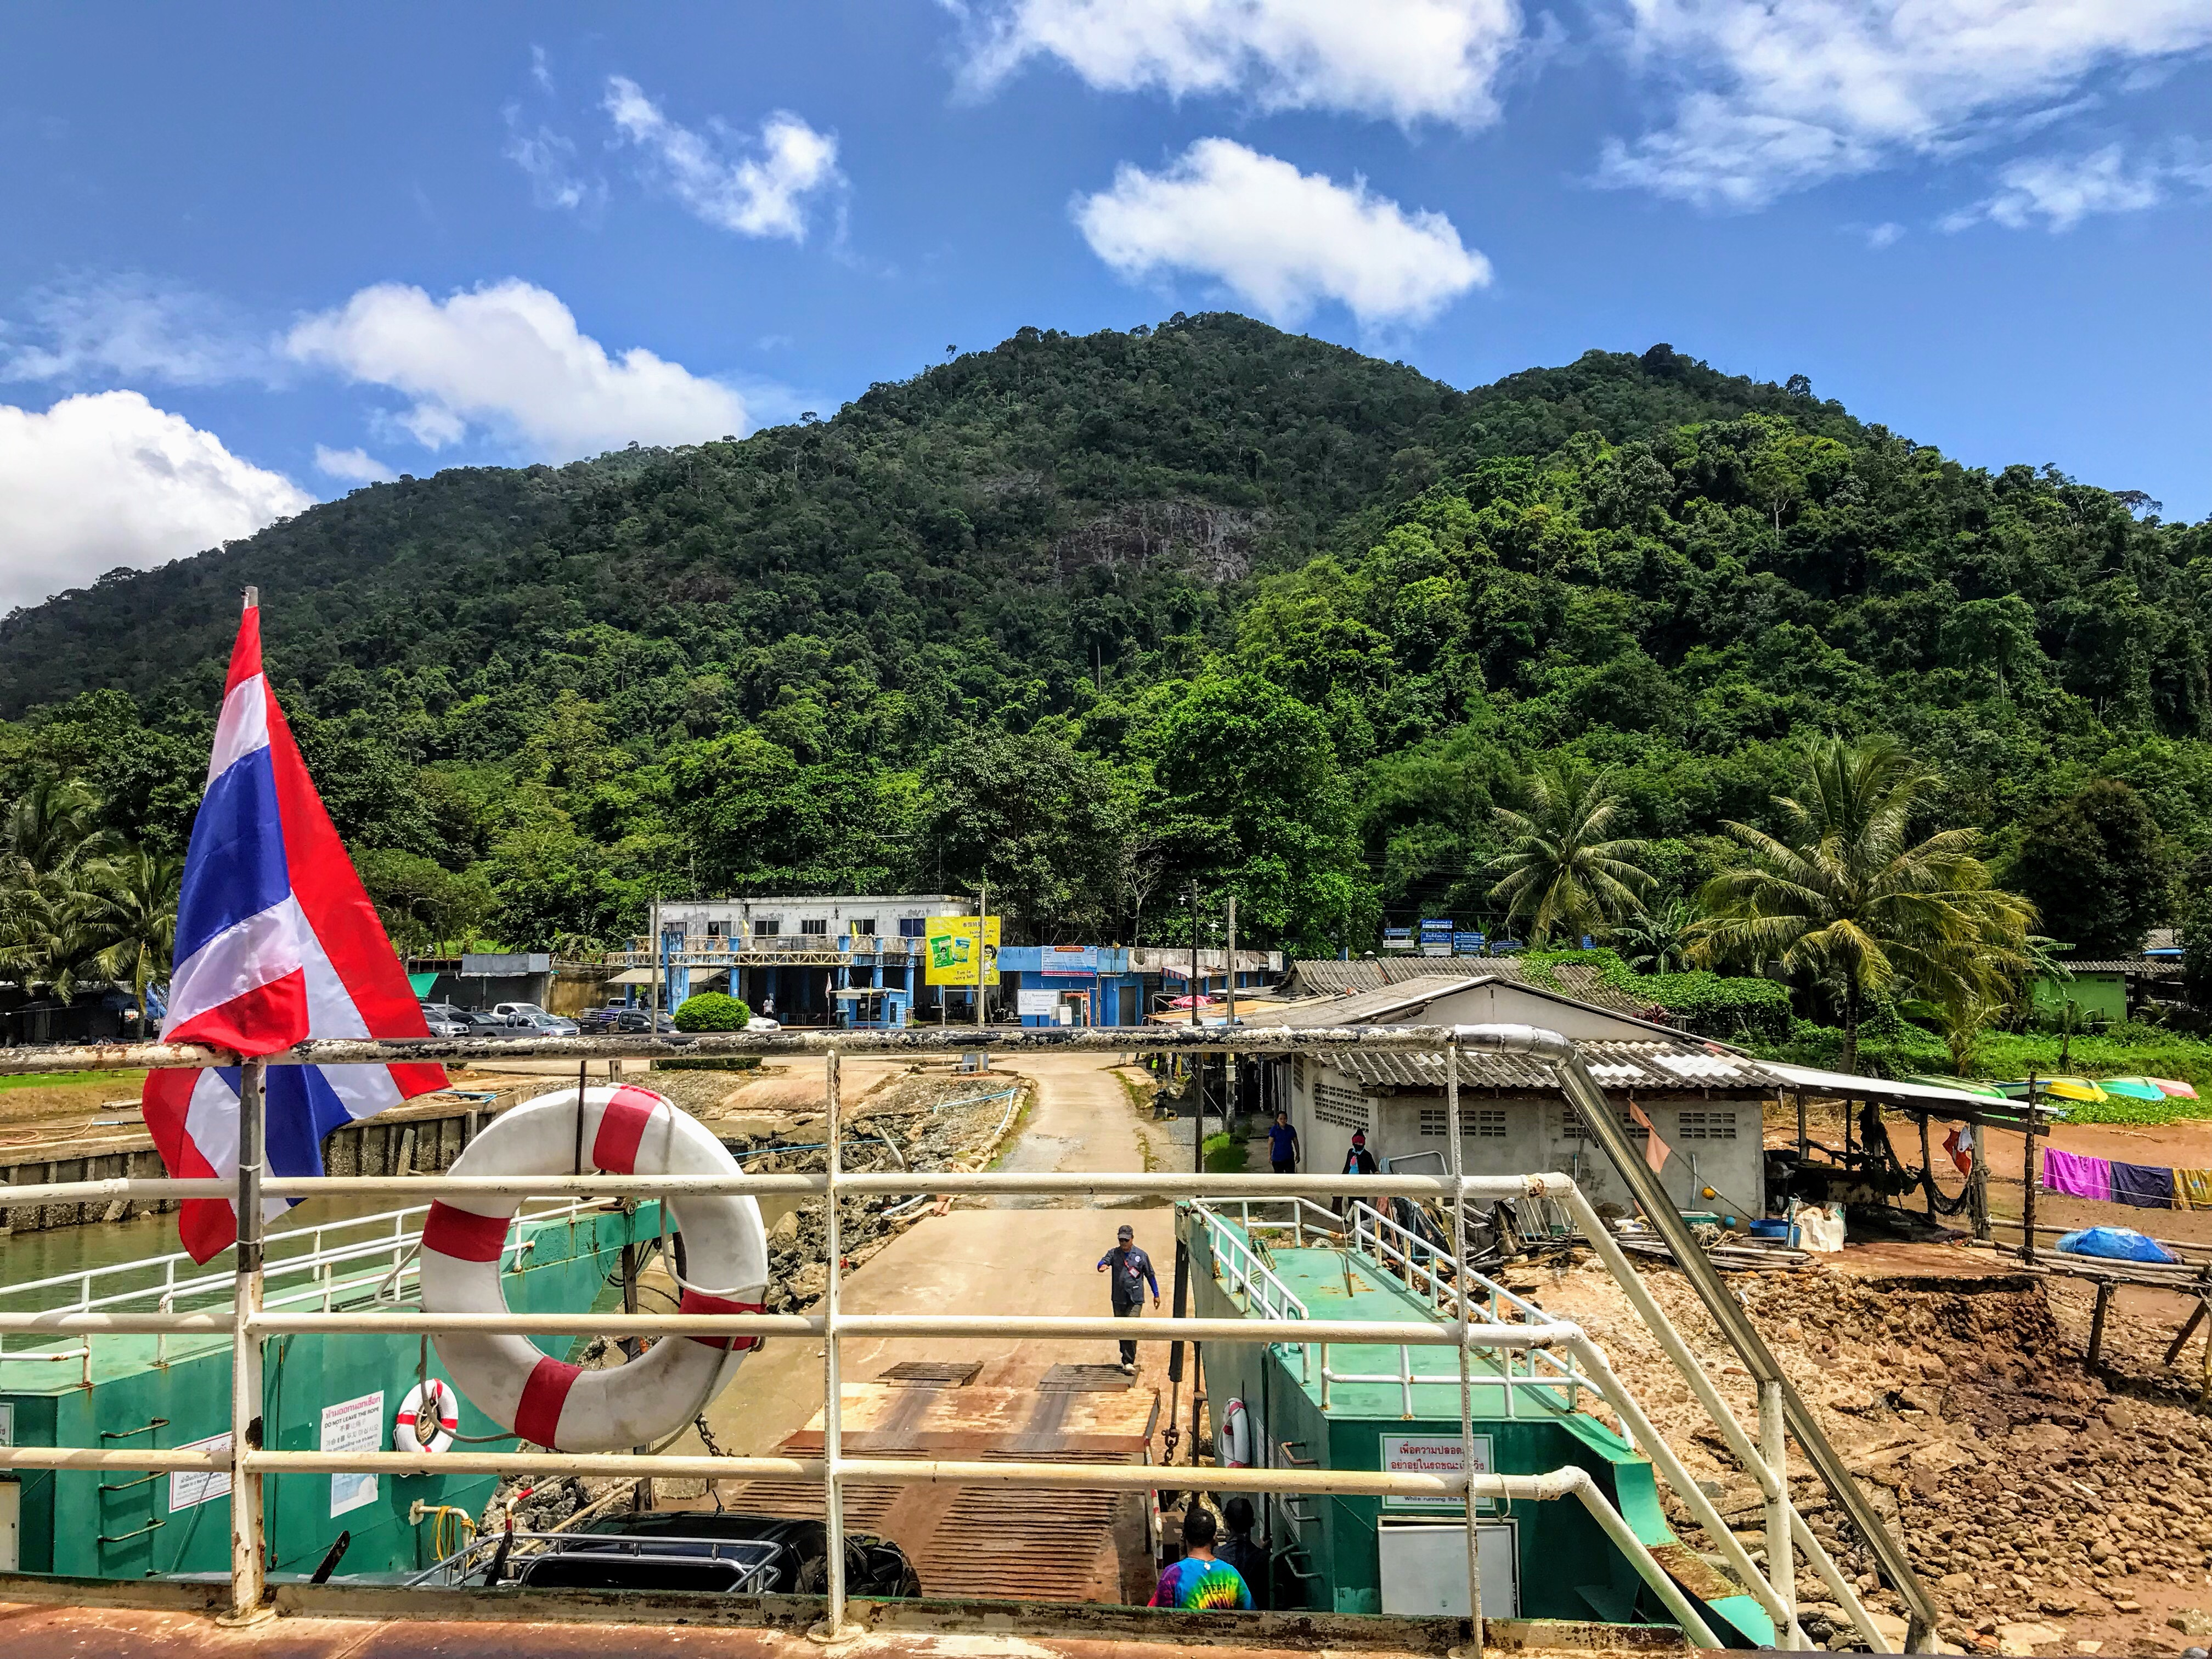 Arriving at Koh Chang port, Thailand